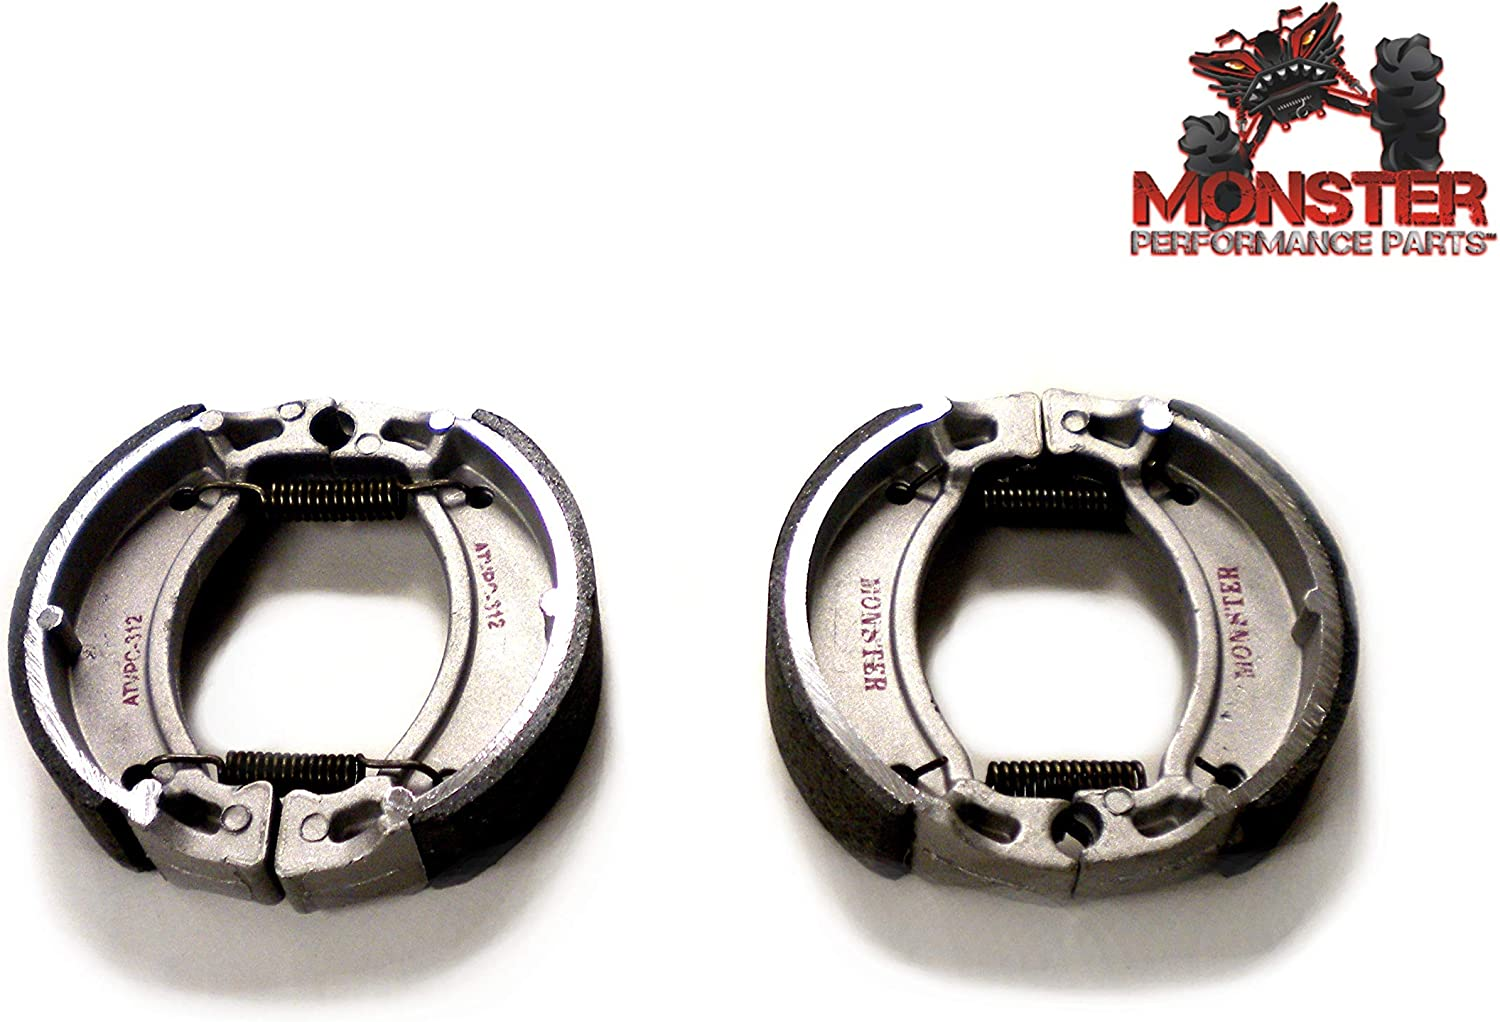 4BE-W253E-00-00 for Yamaha Blaster 200 YFS200 1988-2002 Front Brake Shoes